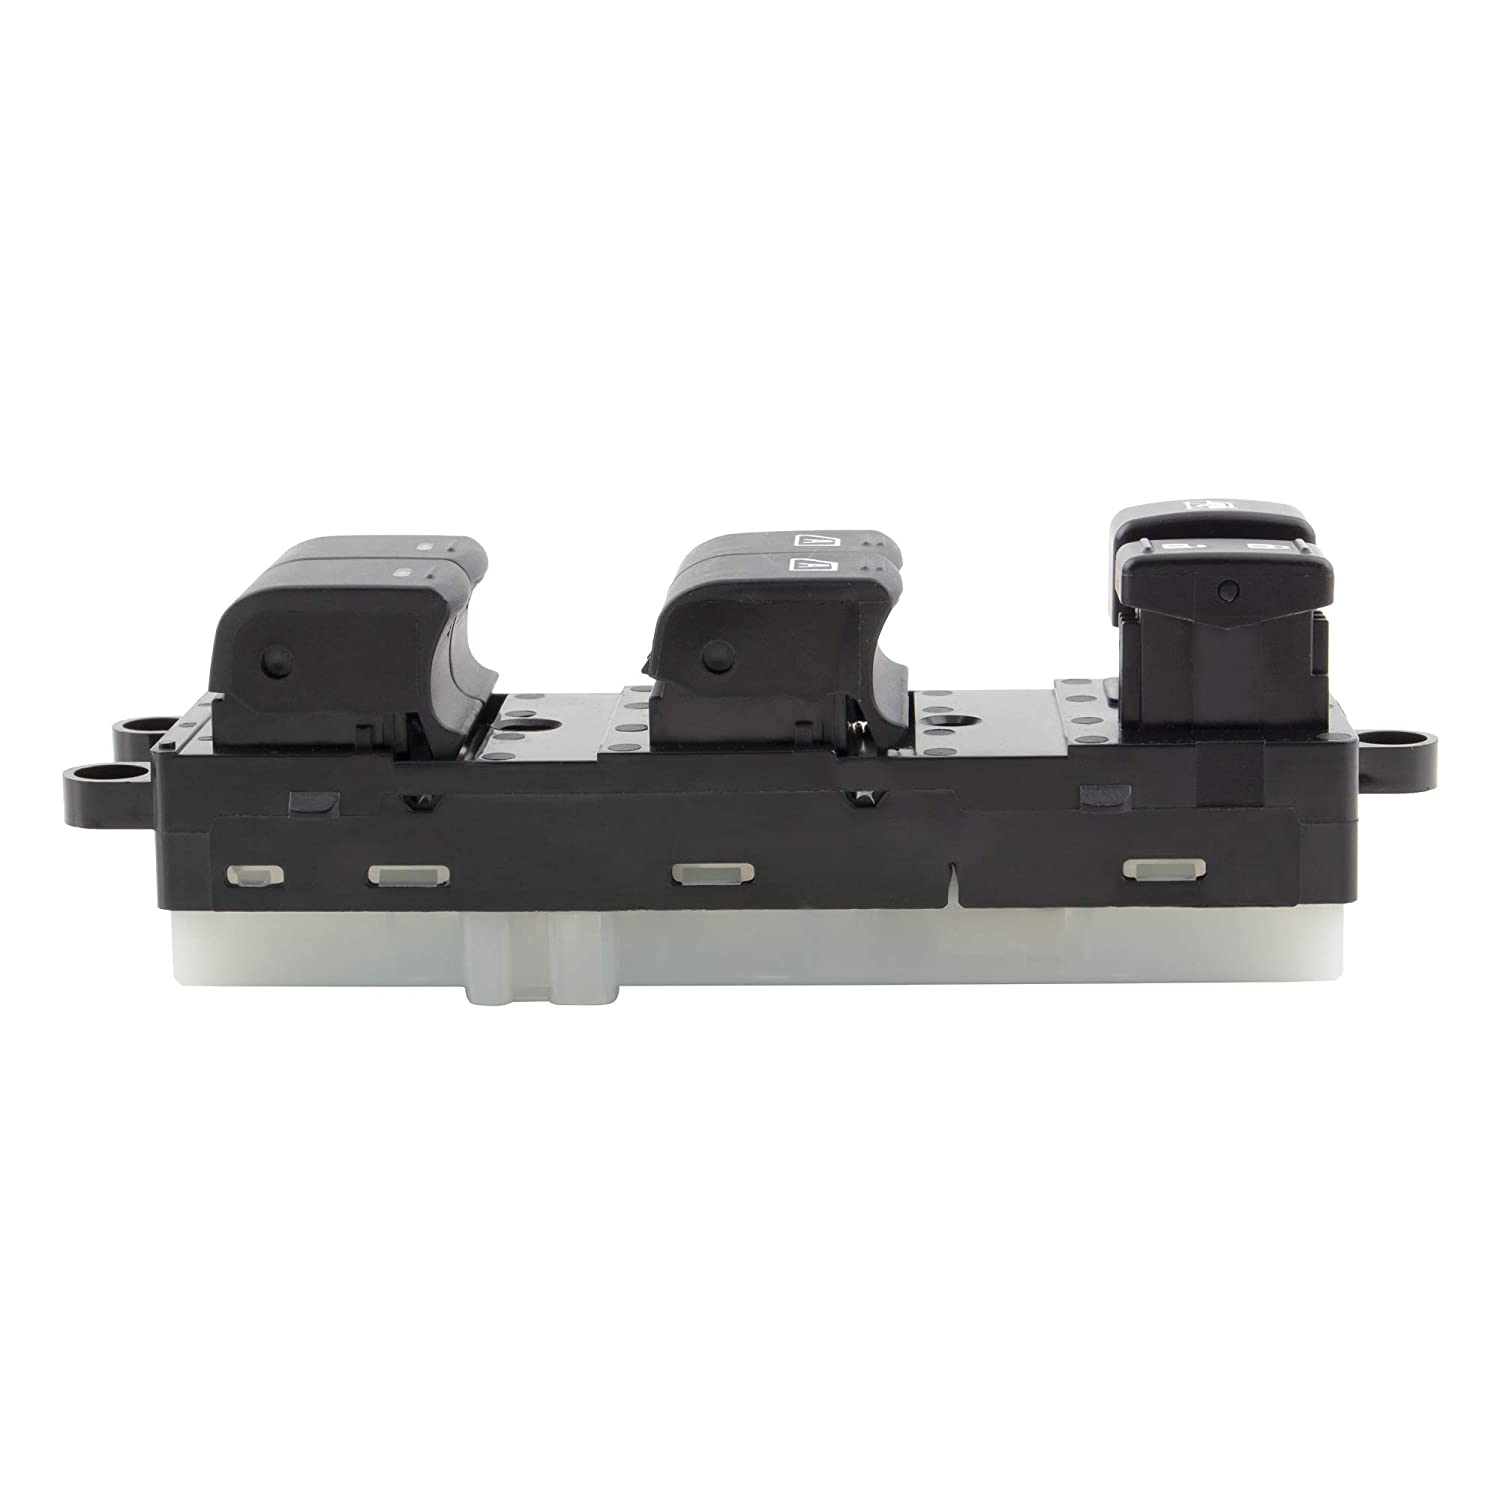 BOXI Front Left Driver Side Power Window Master Switch Compatible with 2007 2008 2009 2010 2011 2012 Nissan Pathfinder Replaces 25401-ZL10A 25401-ZL10B 25401-ZL10C